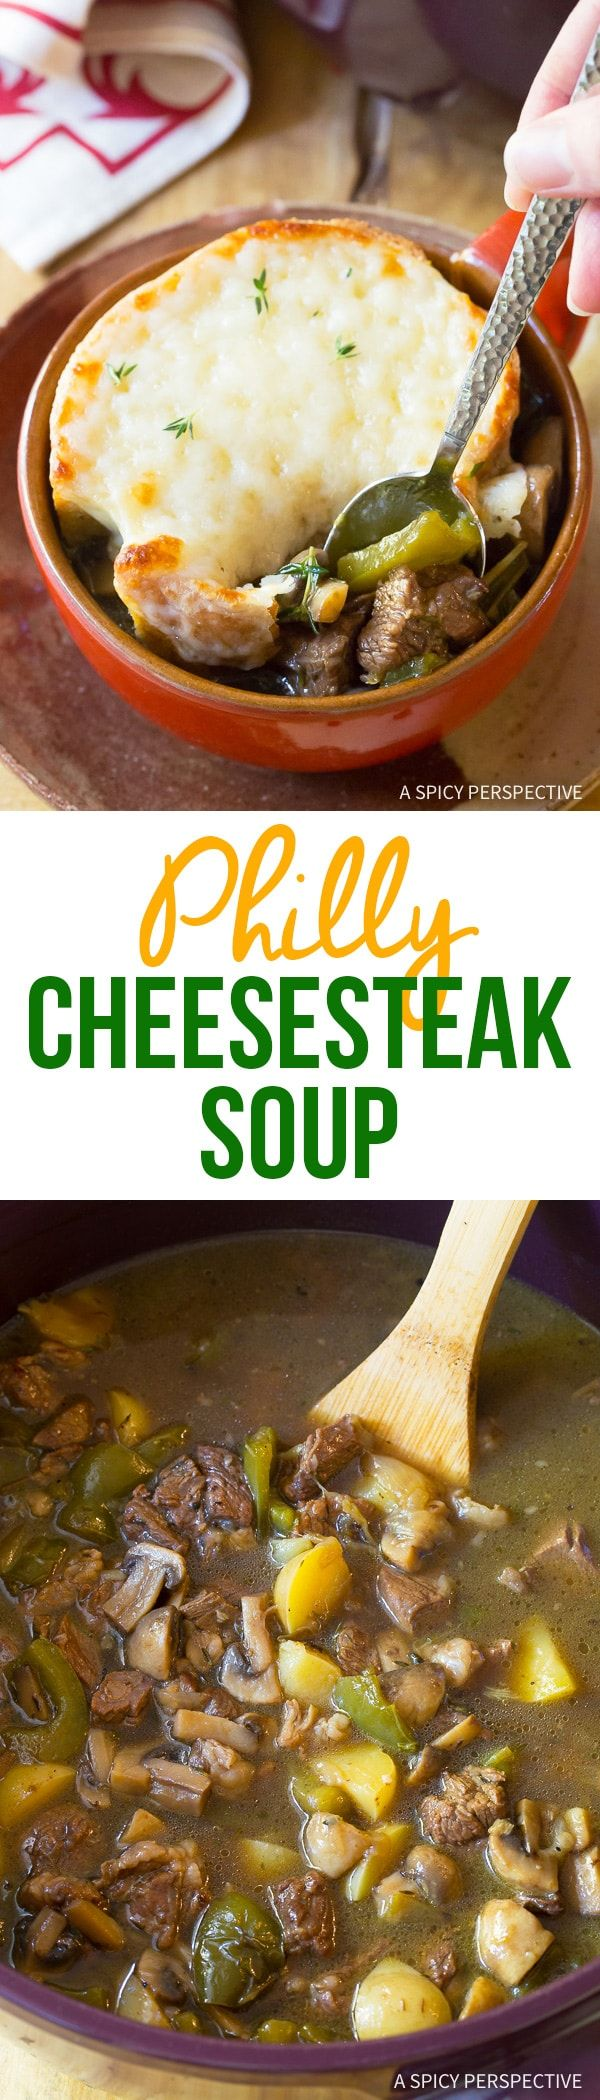 Philly Cheese Steak Soup Recipe - All the appeal of a Philadelphia Cheesesteak Sandwich in a comforting bowl of soup. All the goodness, less calories! via @spicyperspectiv